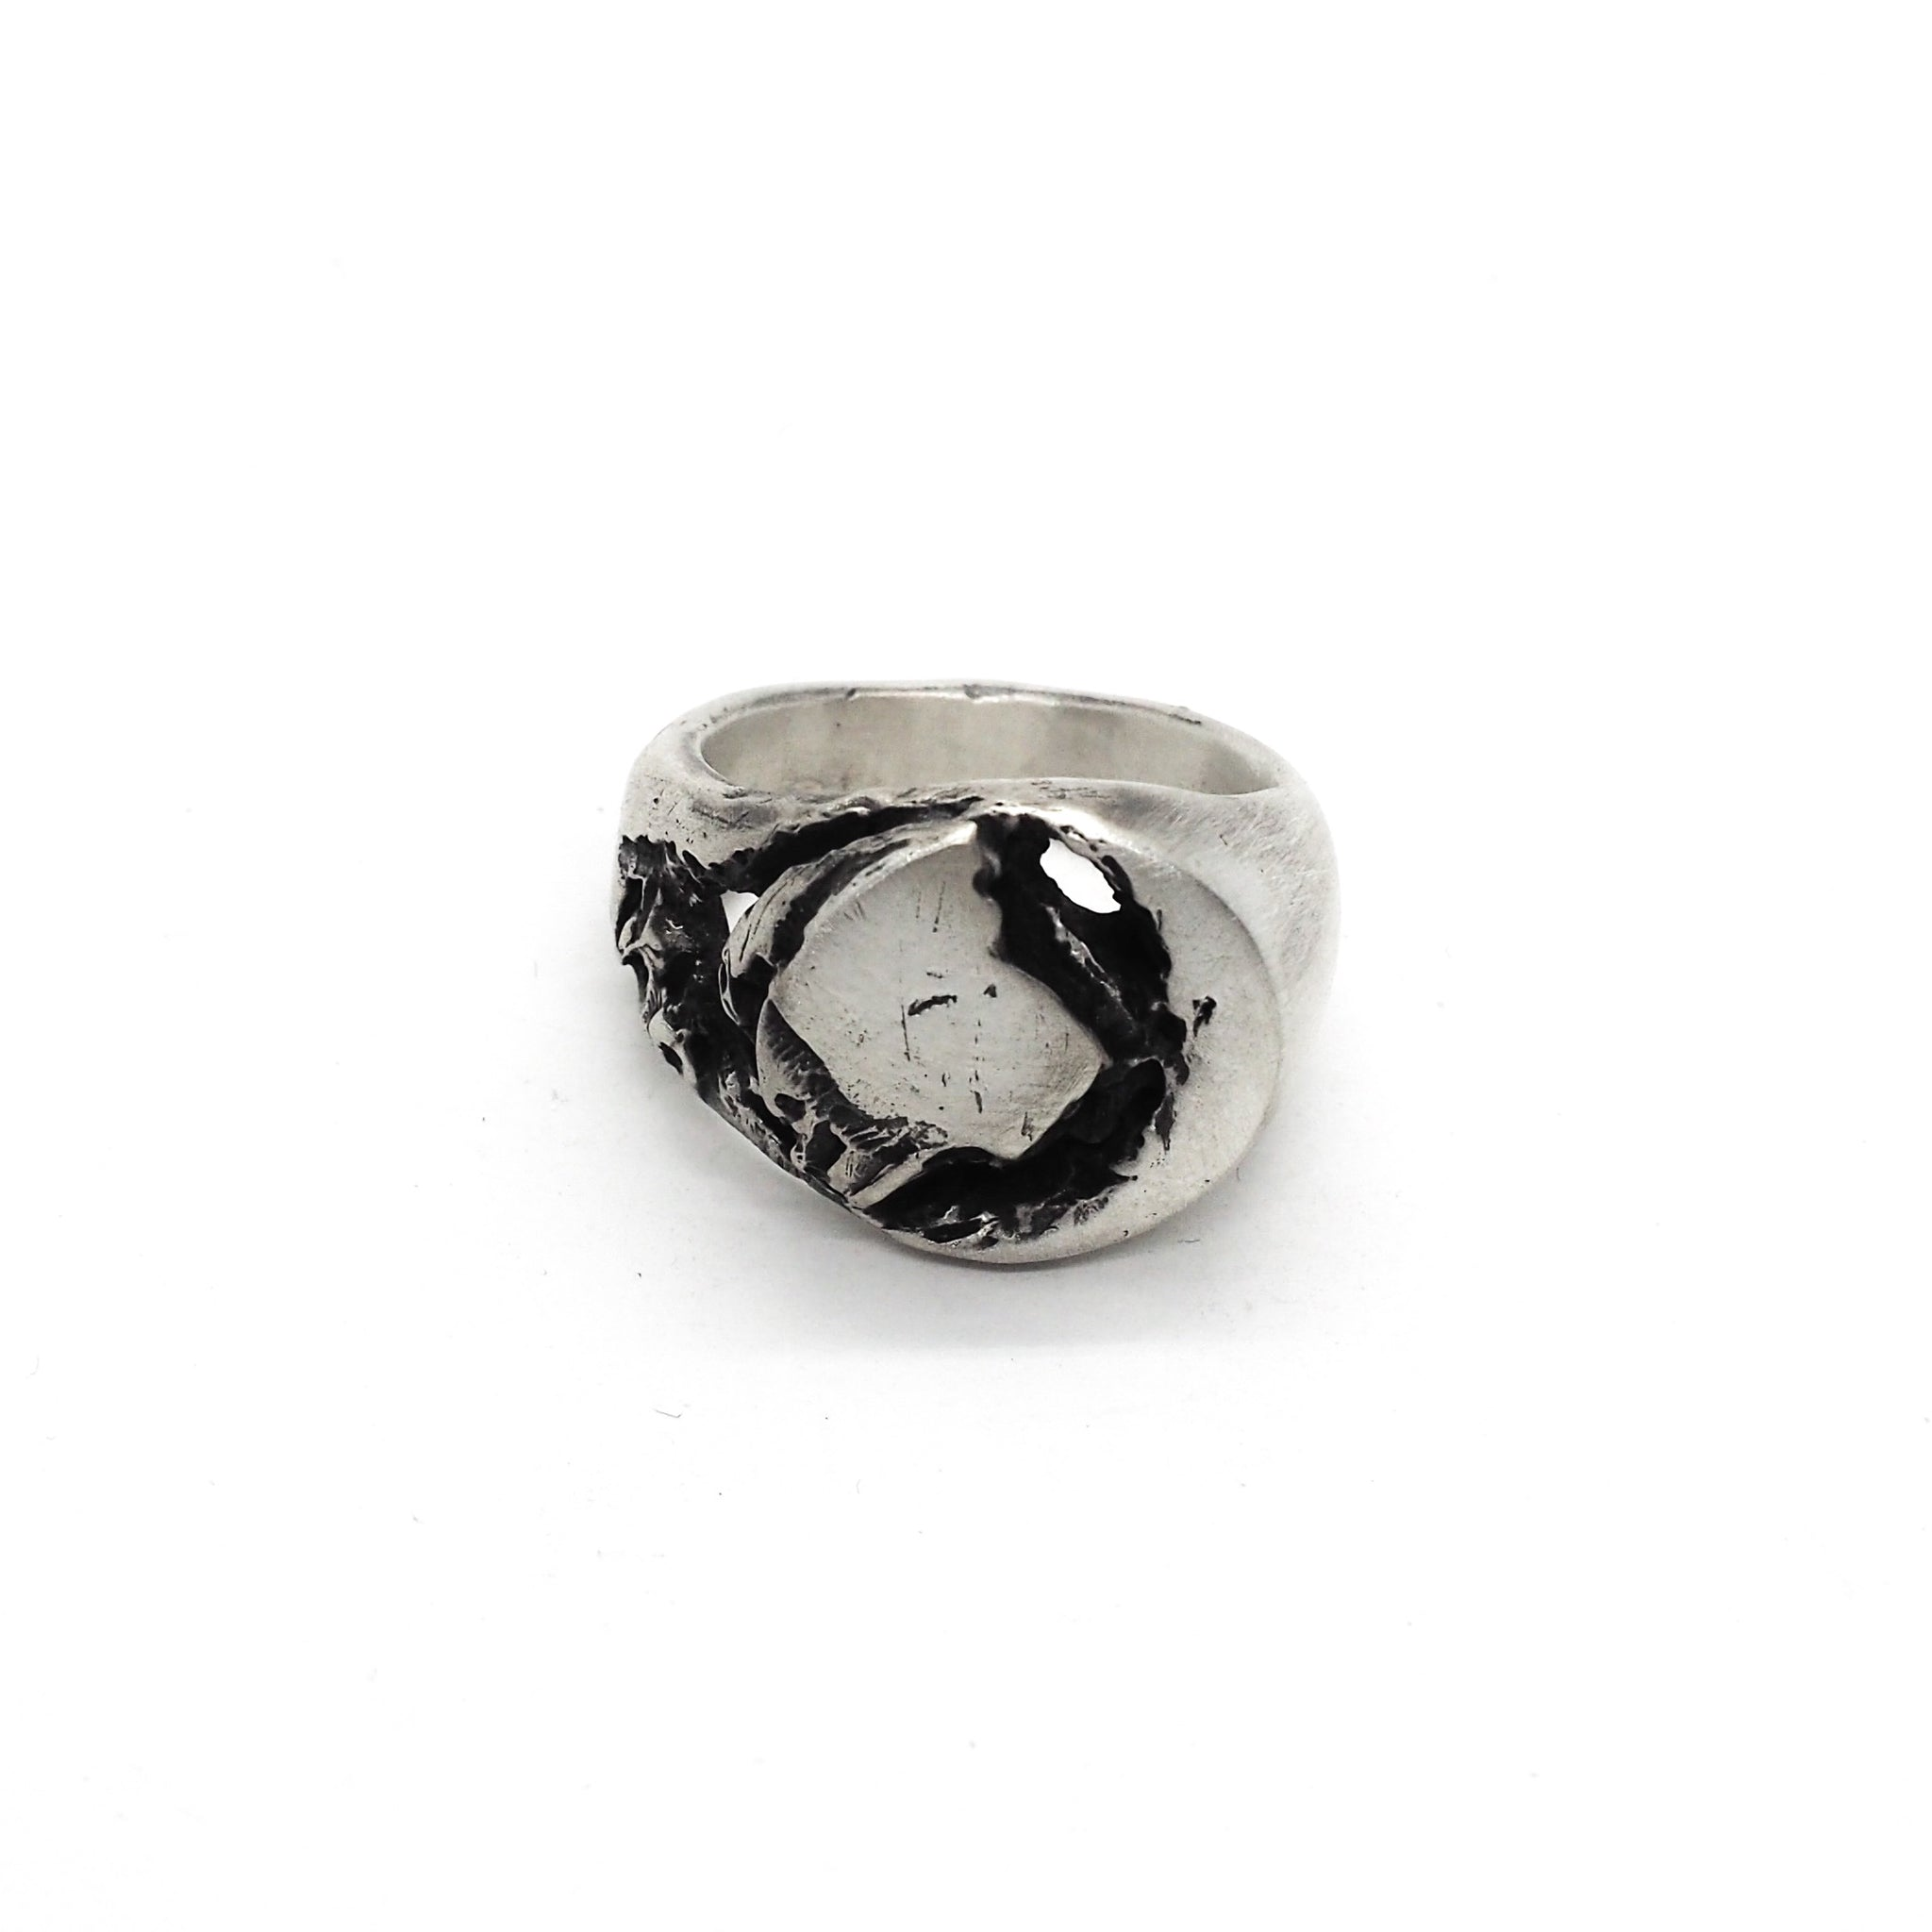 BROKEN SIGNET RING